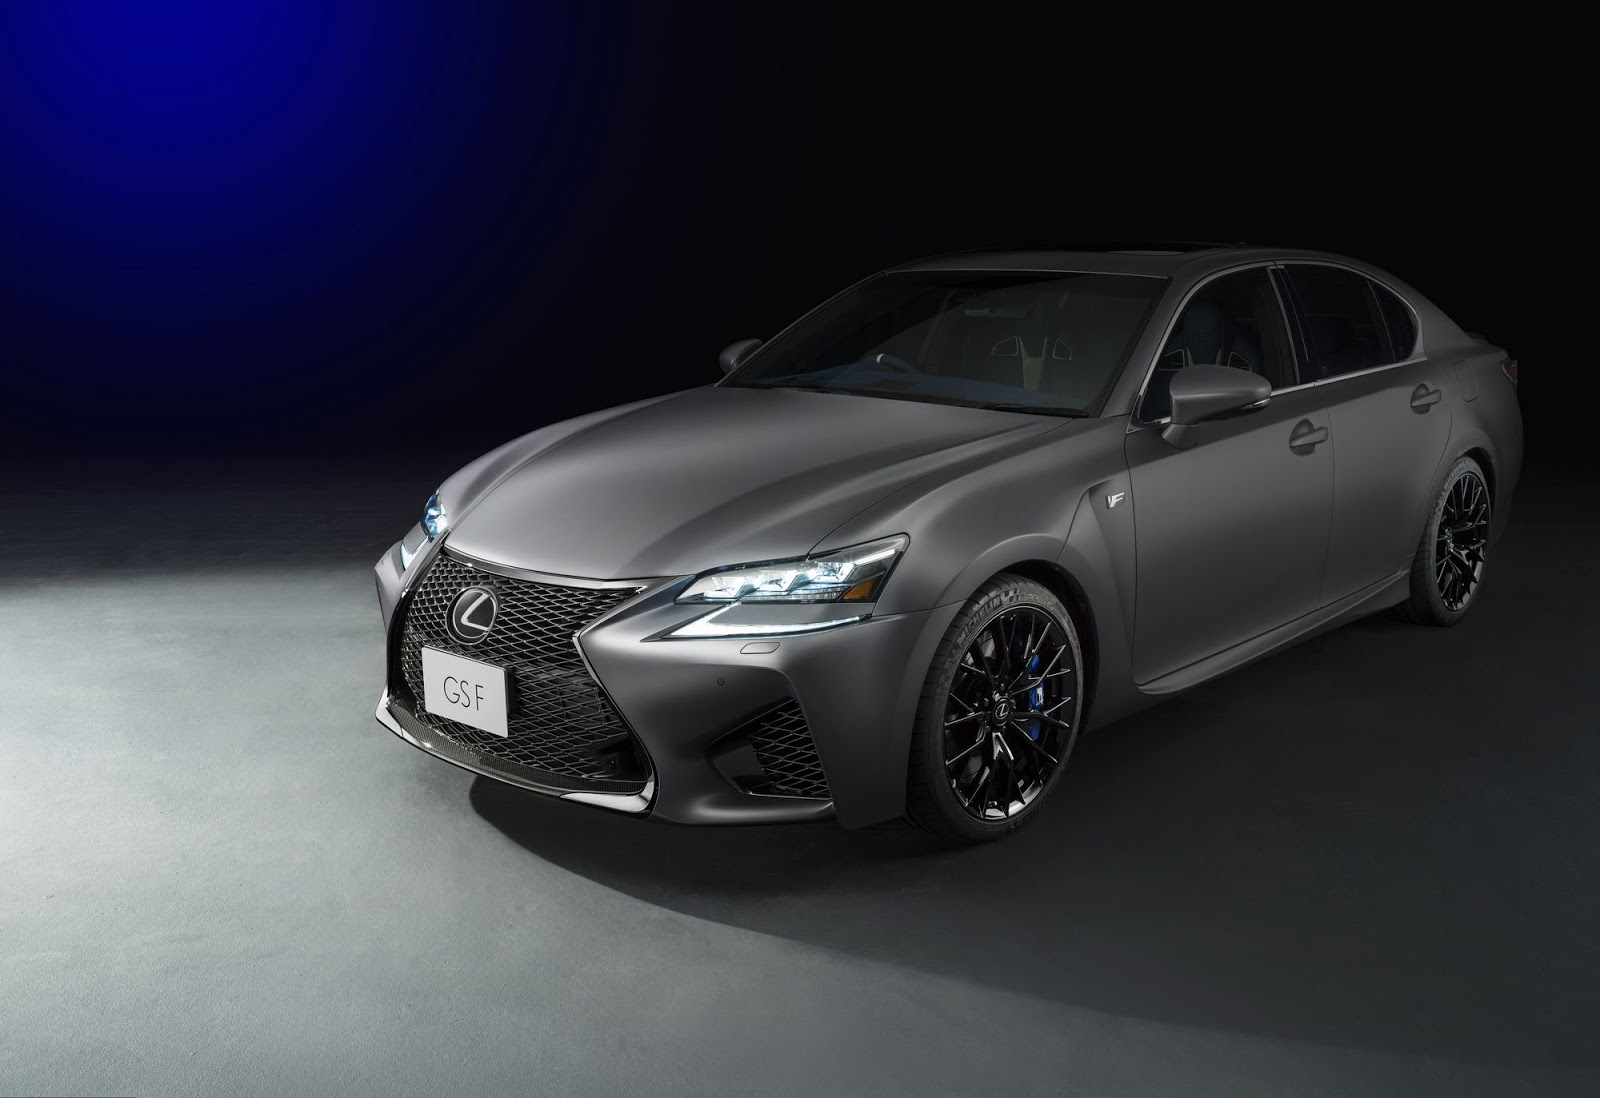 Lexus Celebrates 10 Years Of F With Special Rc F And Gs